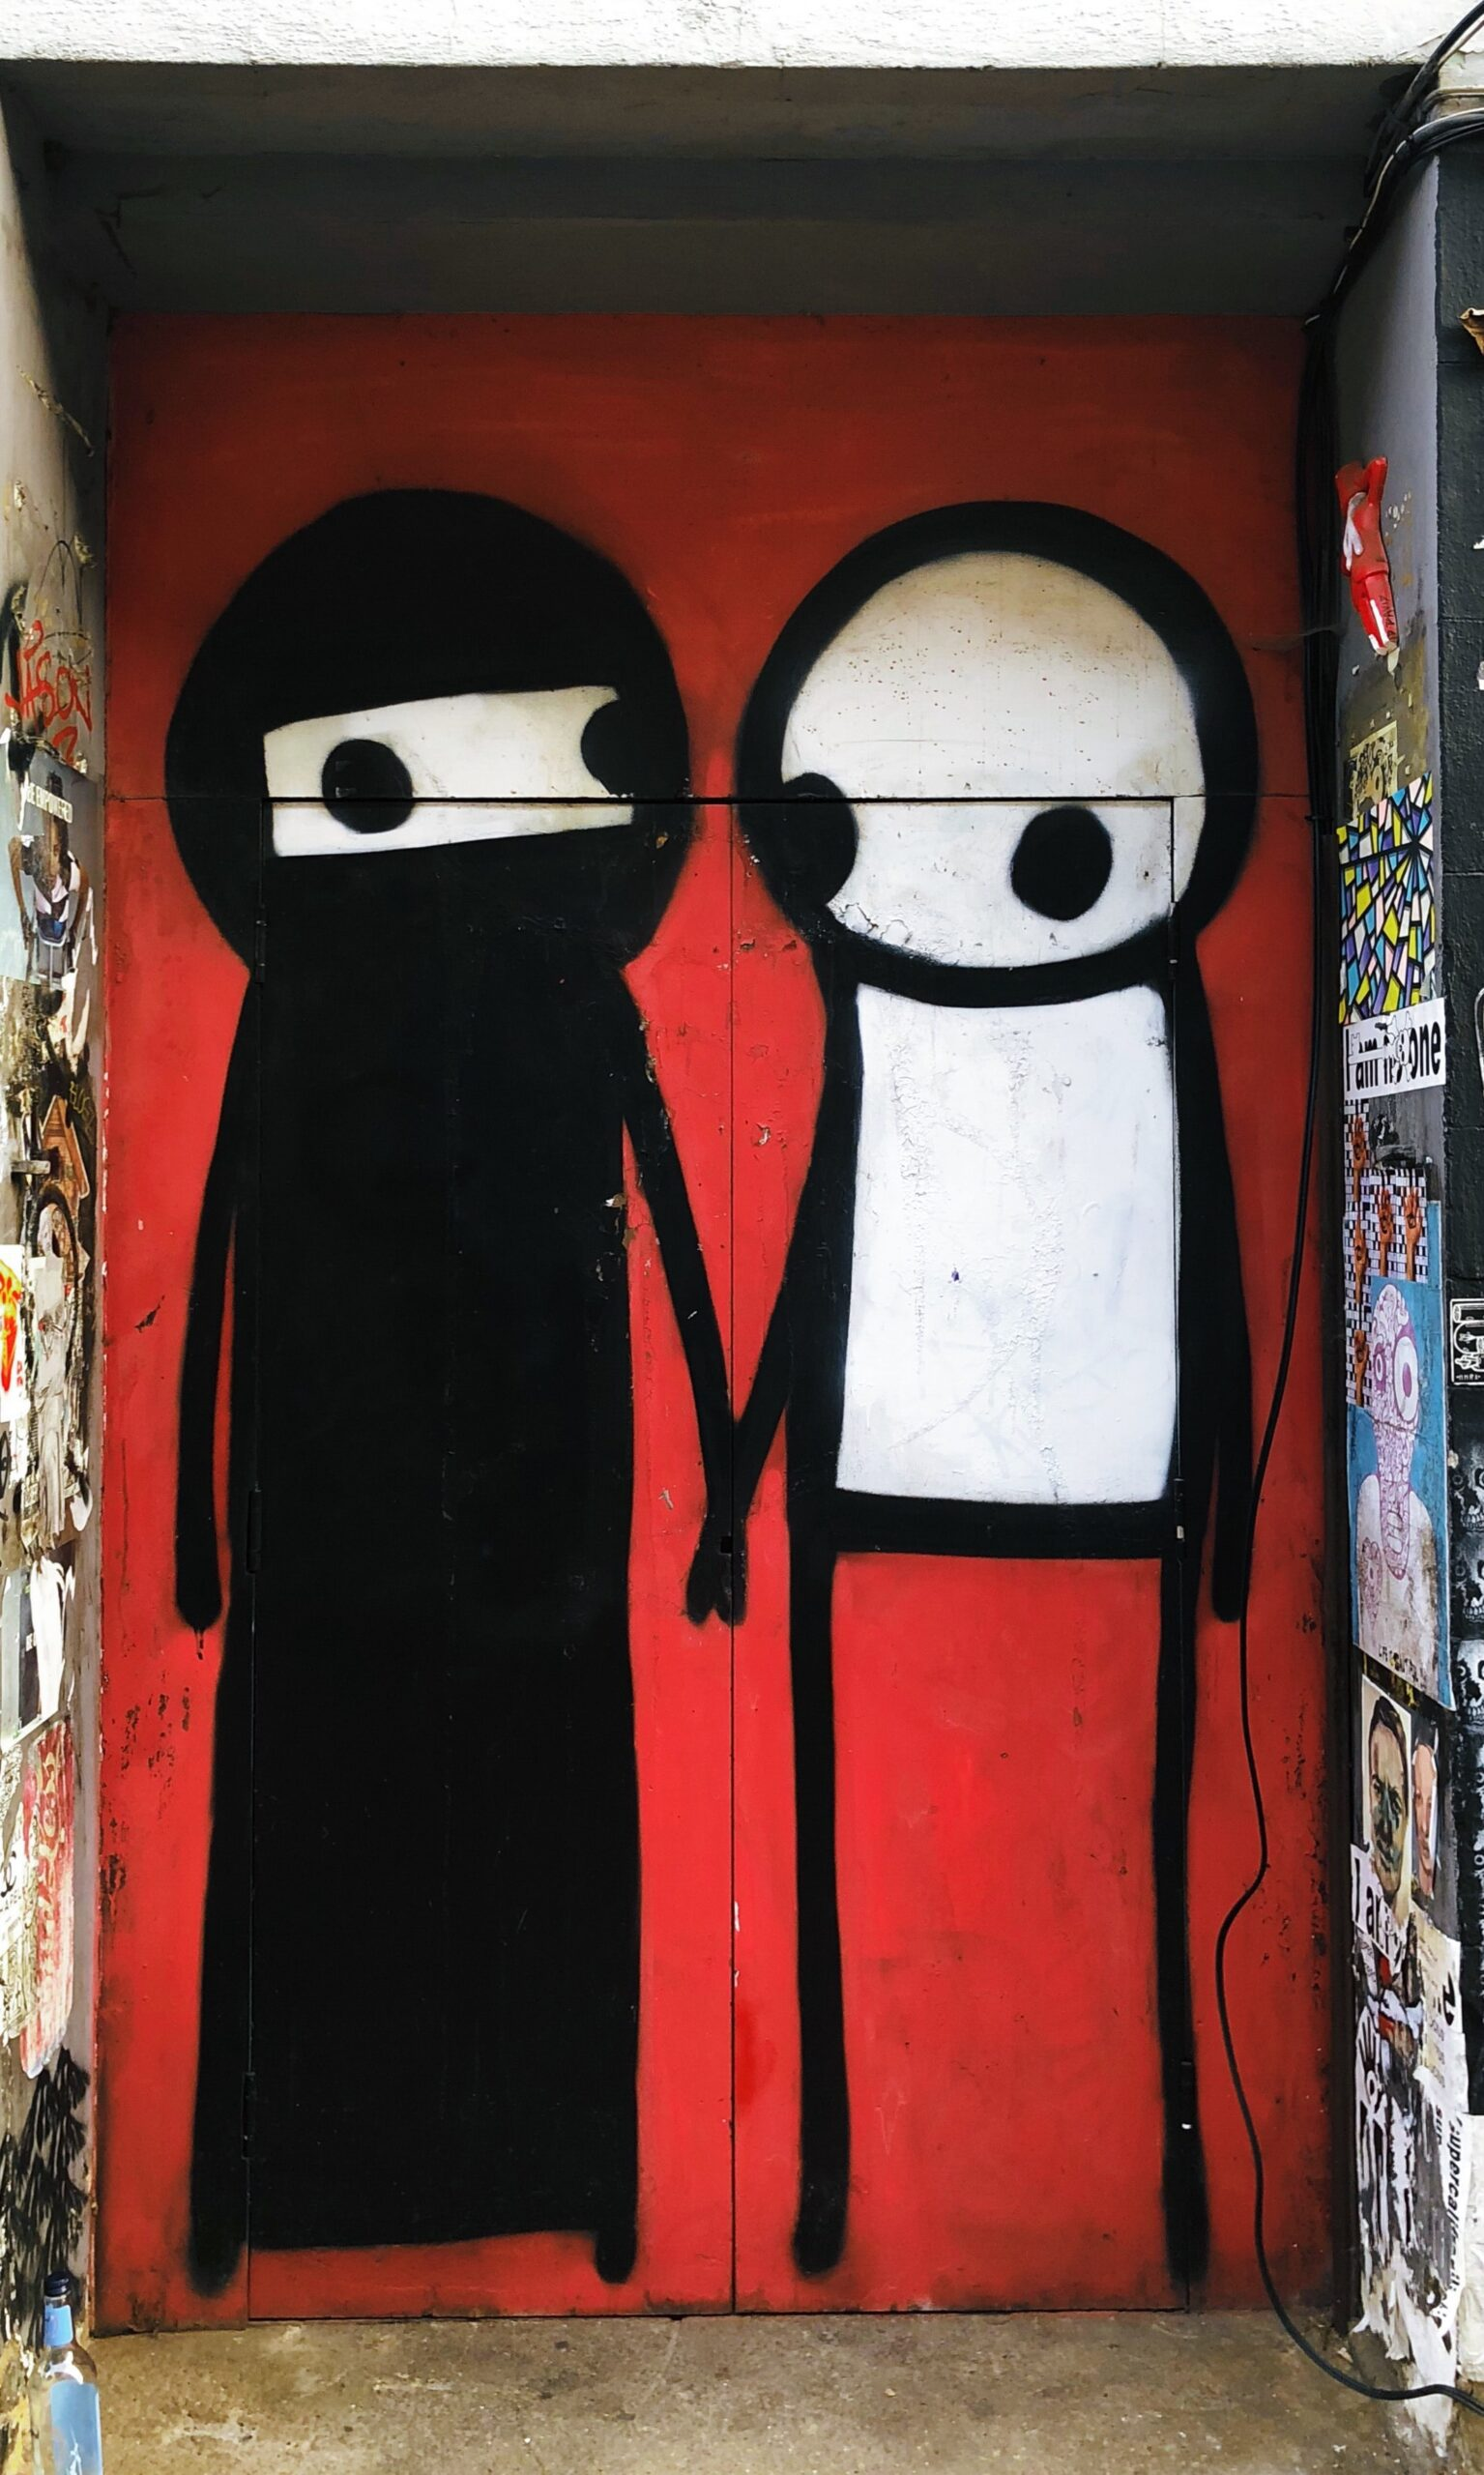 Two stick figures holding hands graffiti red background by Jon Tyson from Unsplash